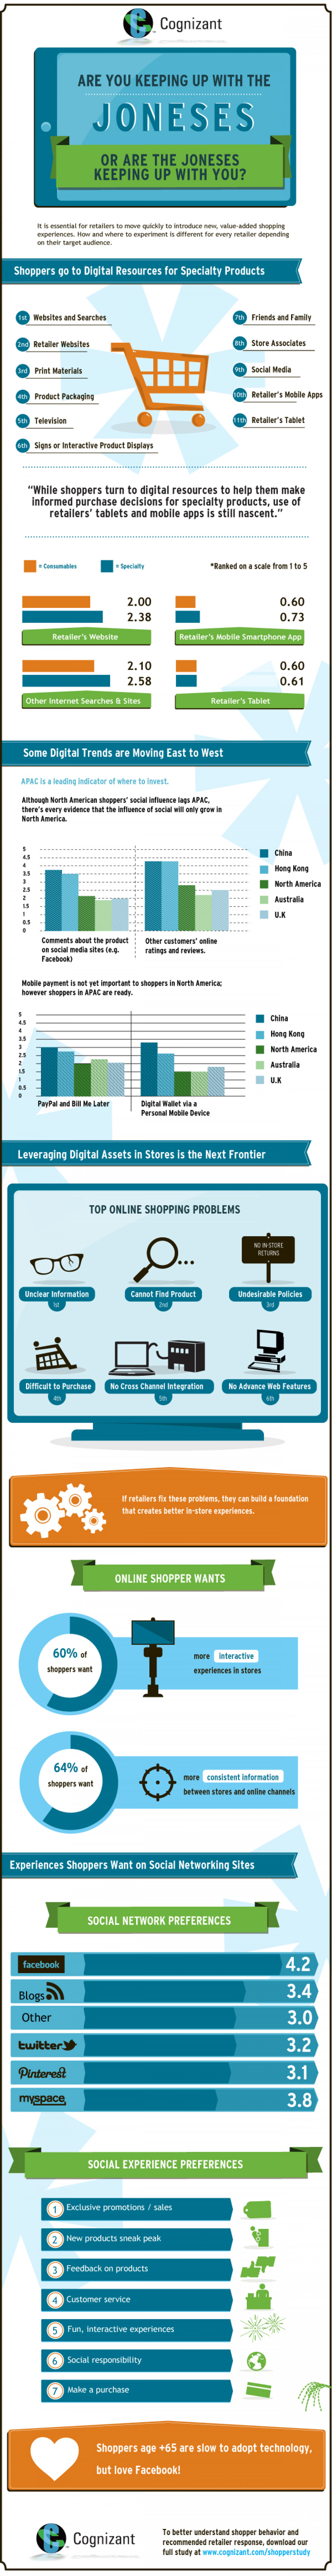 Retail: Staying on top of Digital Trends Infographic